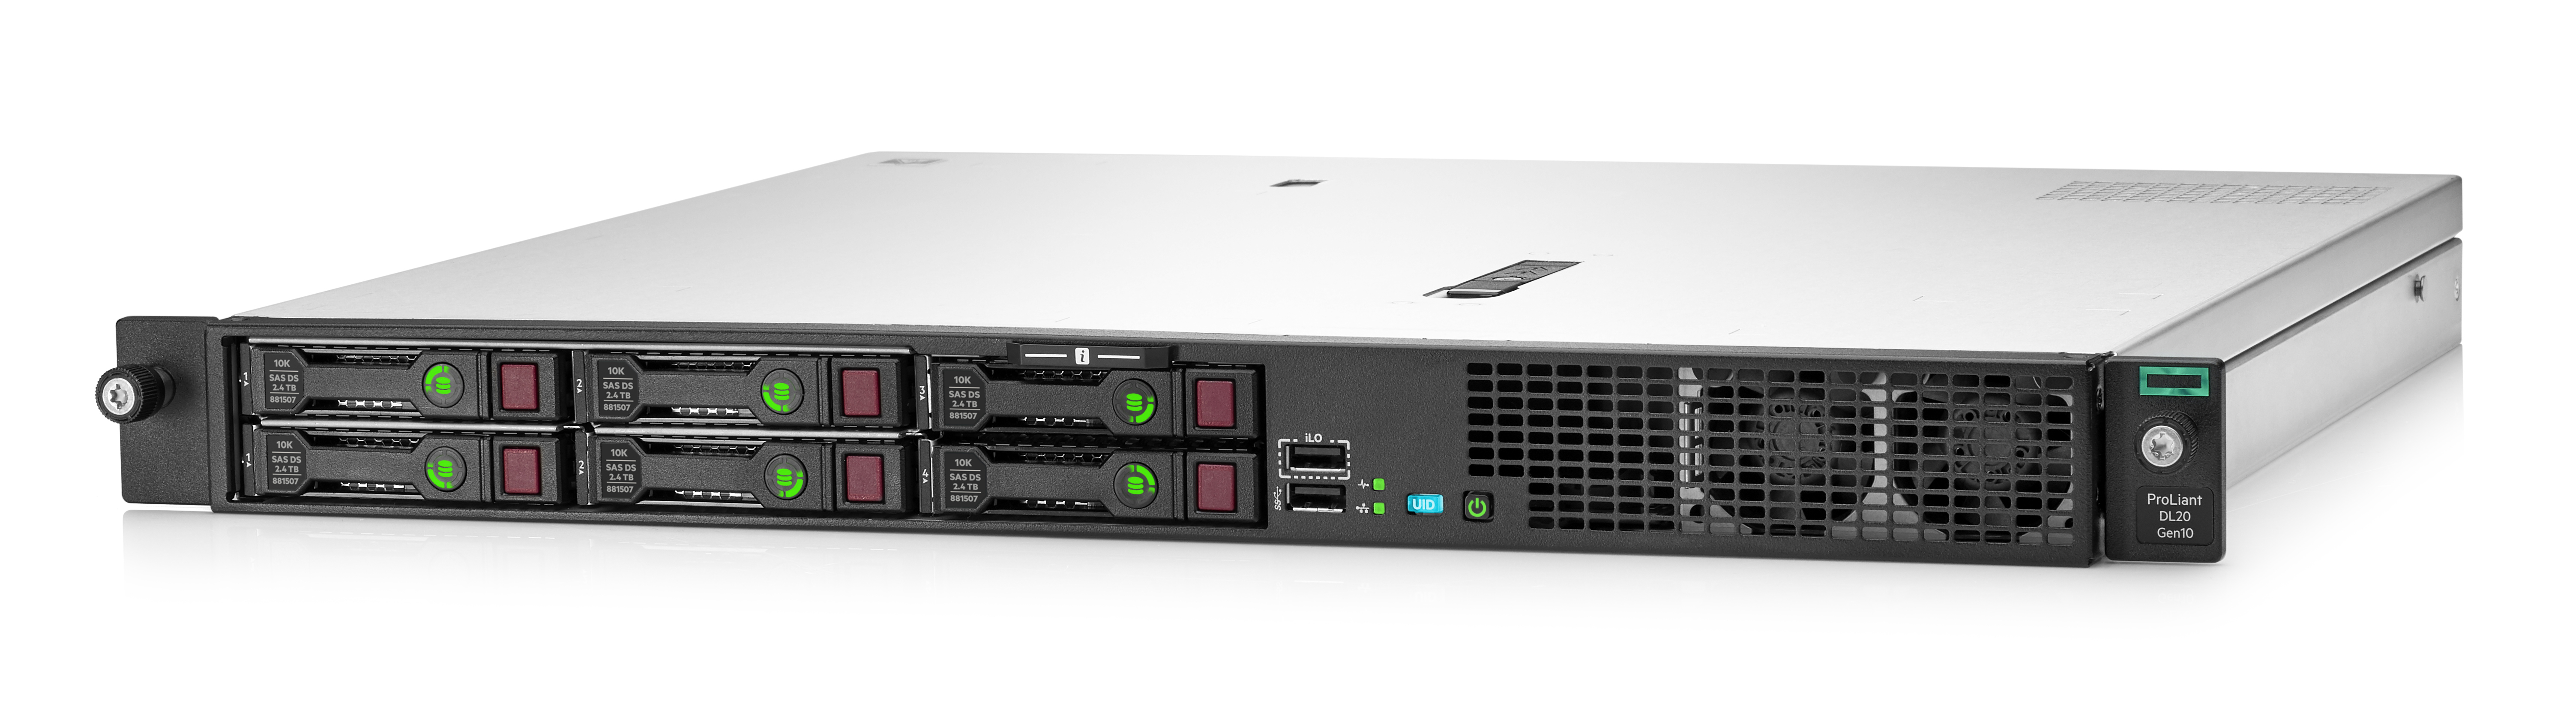 DL20 Gen10 4SFF E2234 (3.6GHz/4-core/71W)/ 16GB/ 290W PS/ Non HDD/ S100i/ 290W PS/ 3Y WTY